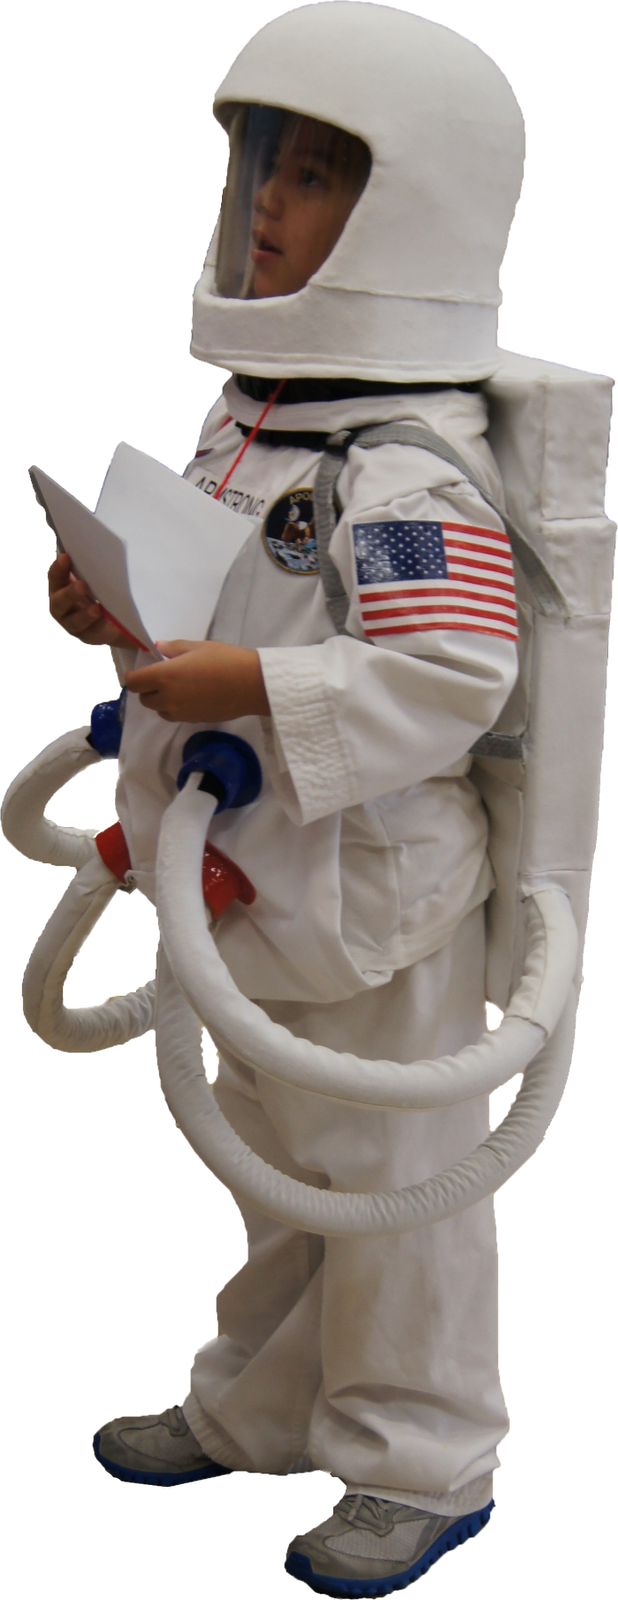 neil armstrong costume ideas - photo #17